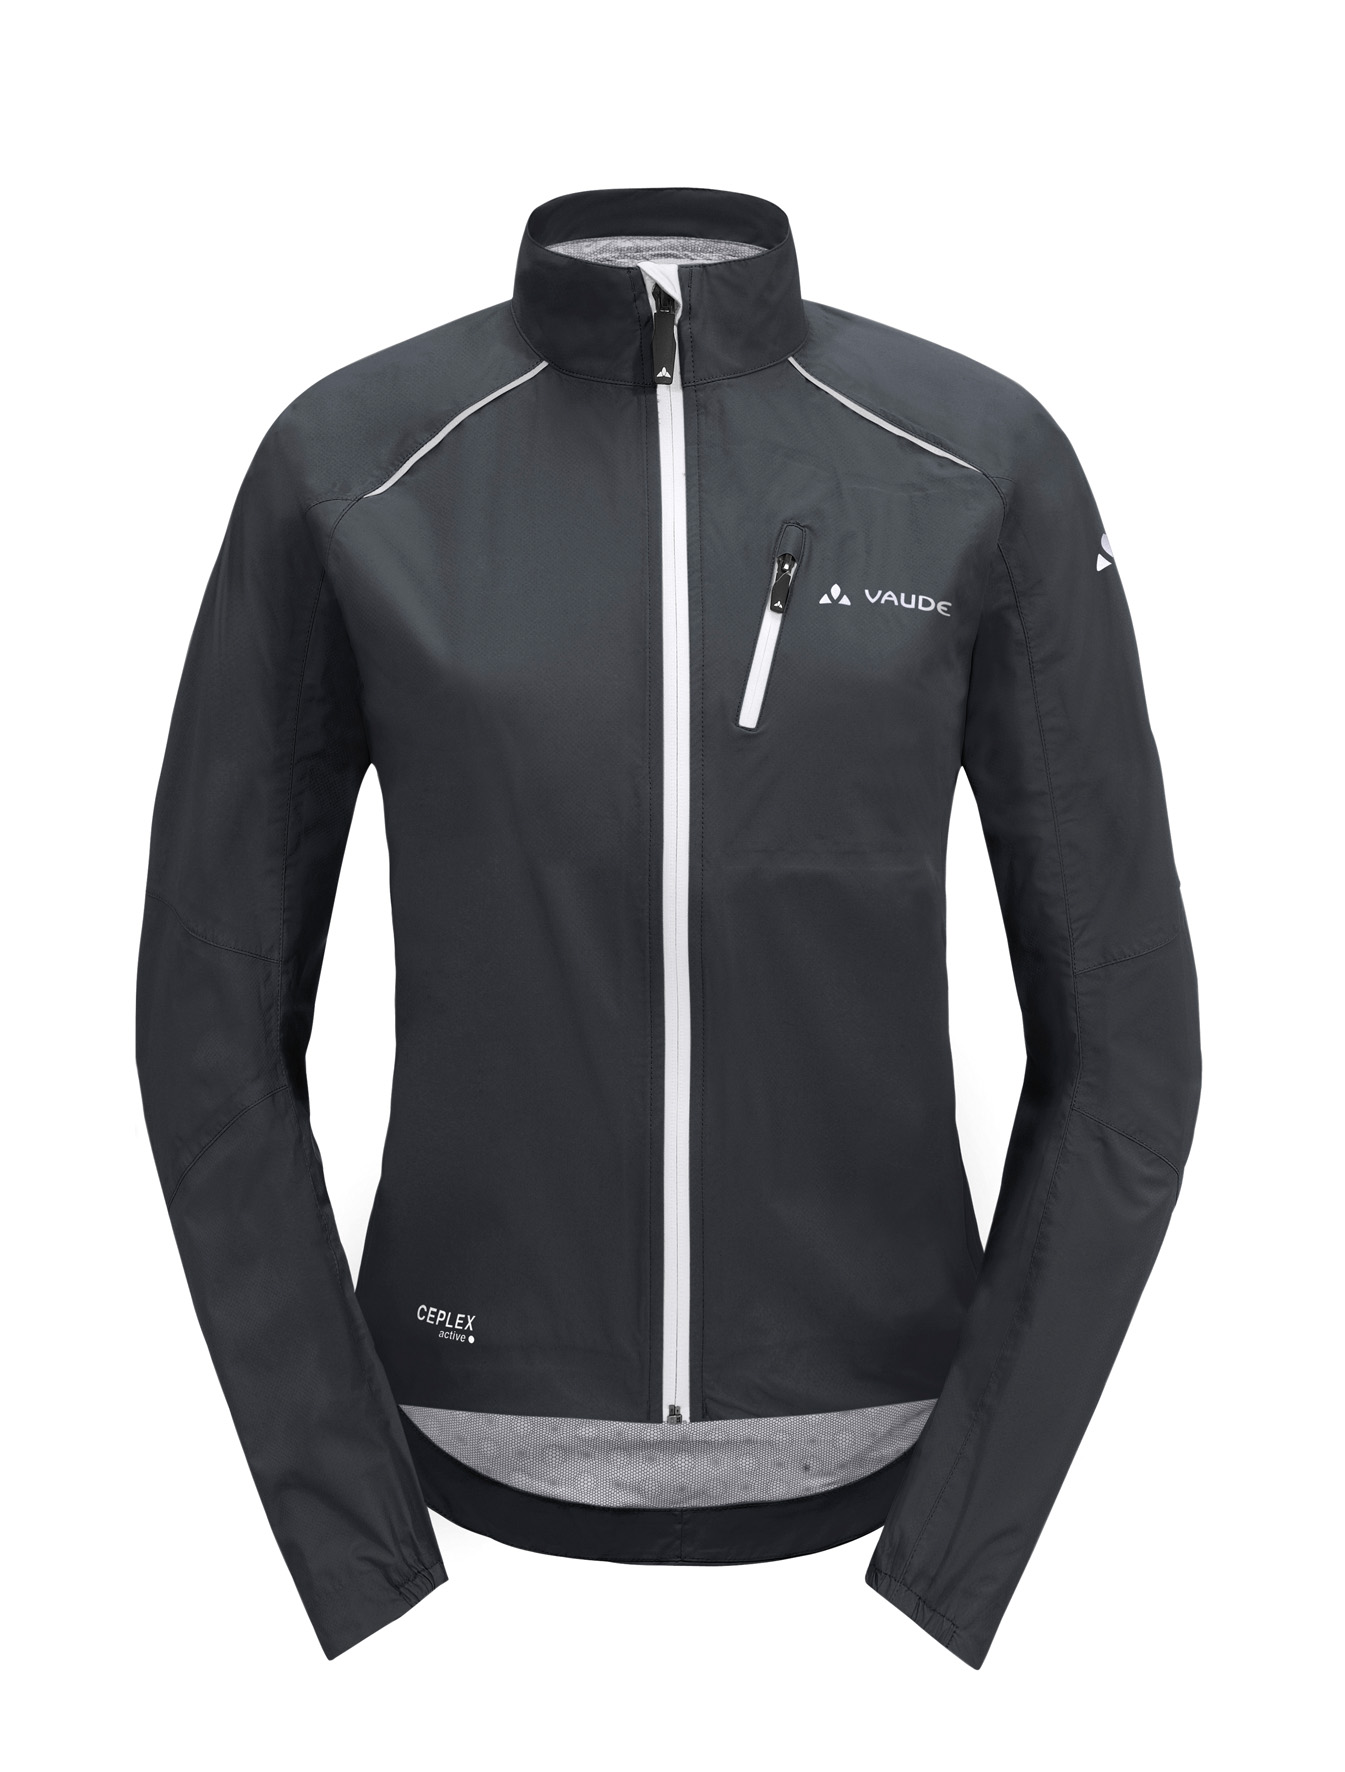 Women´s Spray Jacket III black/white Größe 40 - Women´s Spray Jacket III black/white Größe 40